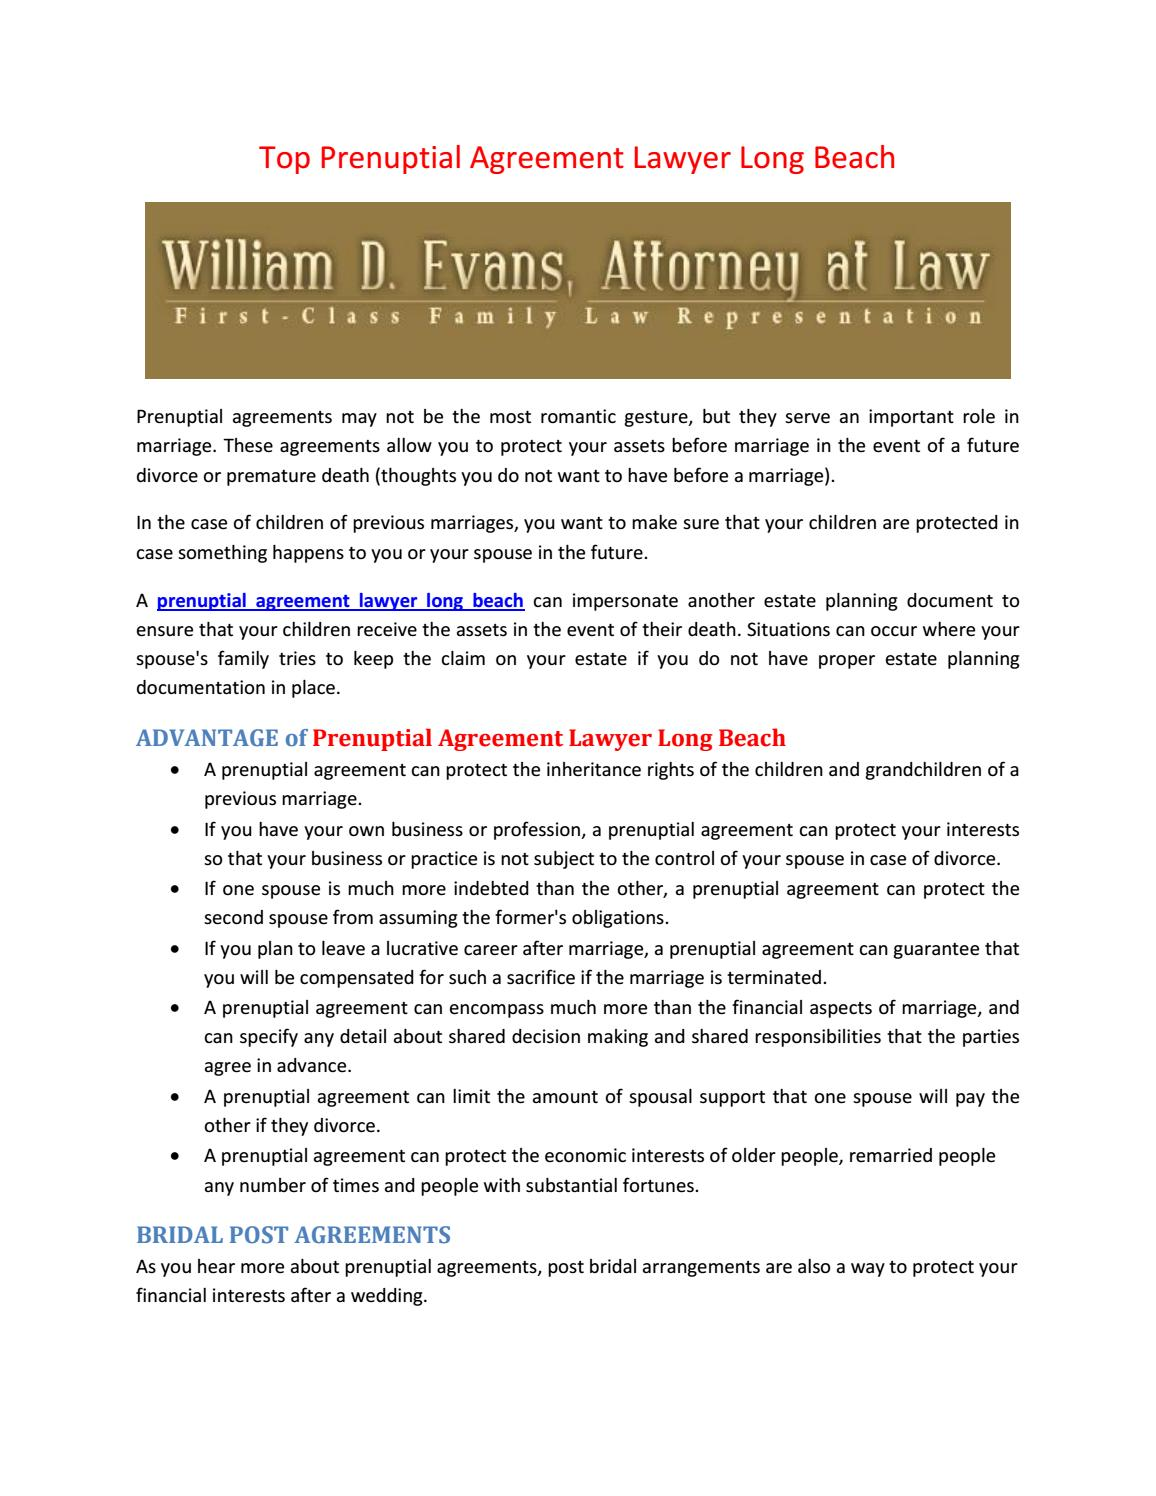 Top Prenuptial Agreement Lawyer Long Beach By Family Law Issuu